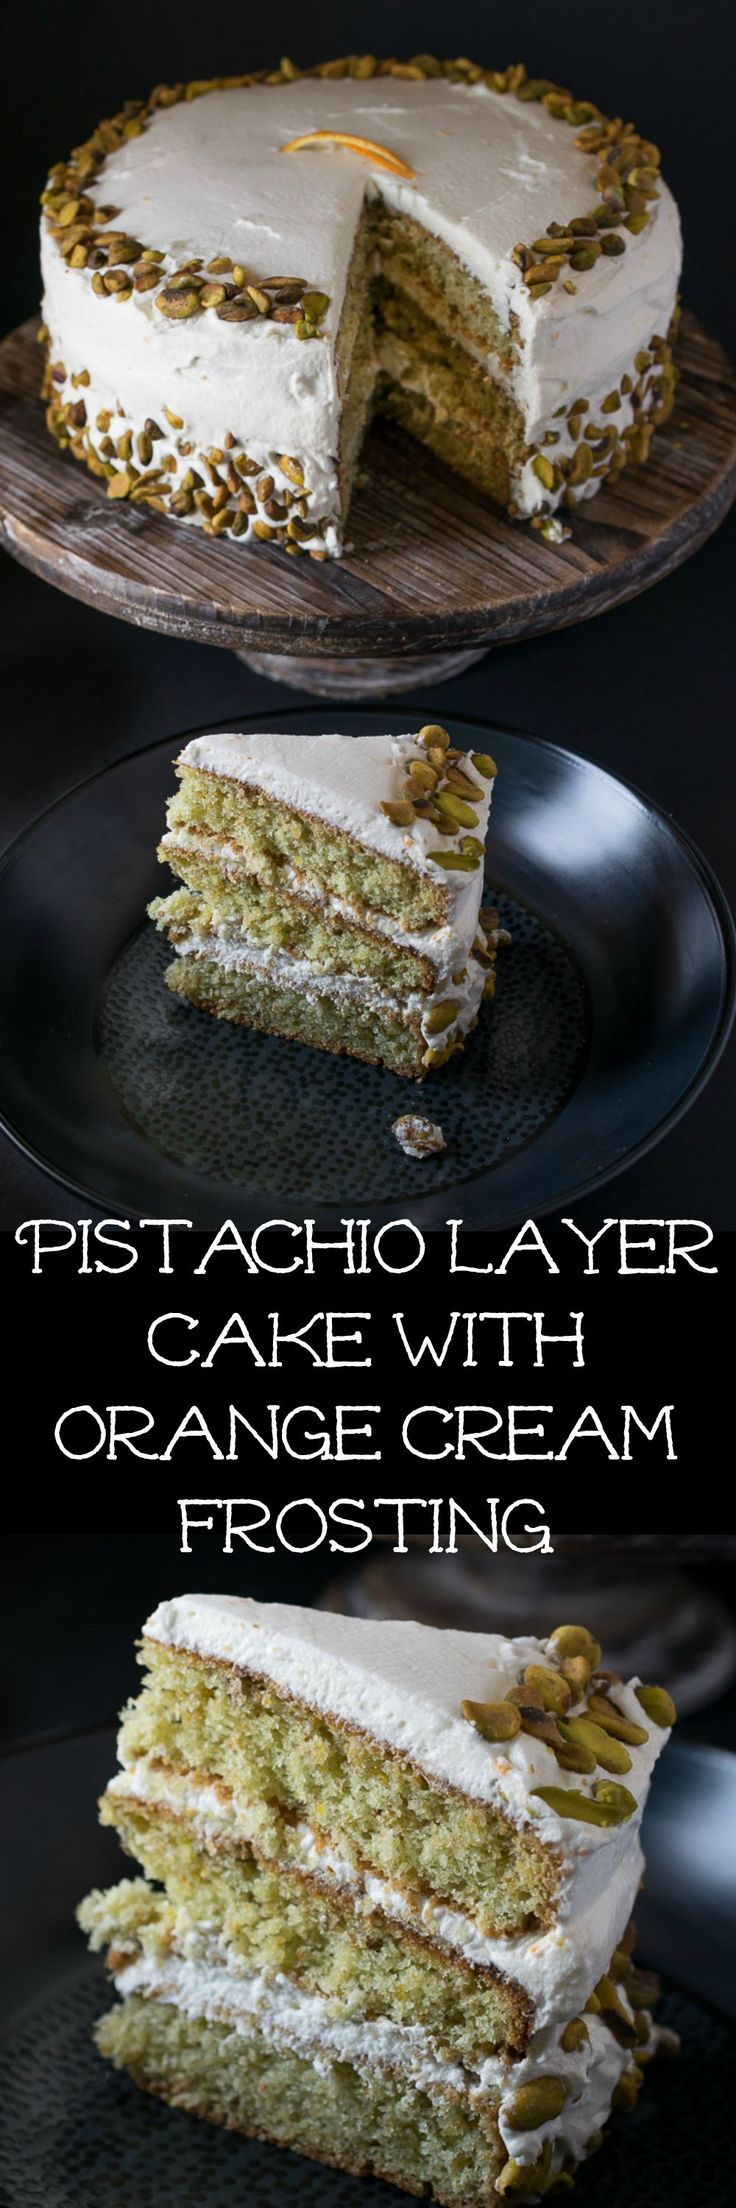 Pistachio layer cake with orange cream frosting has ground pistachios as well as…